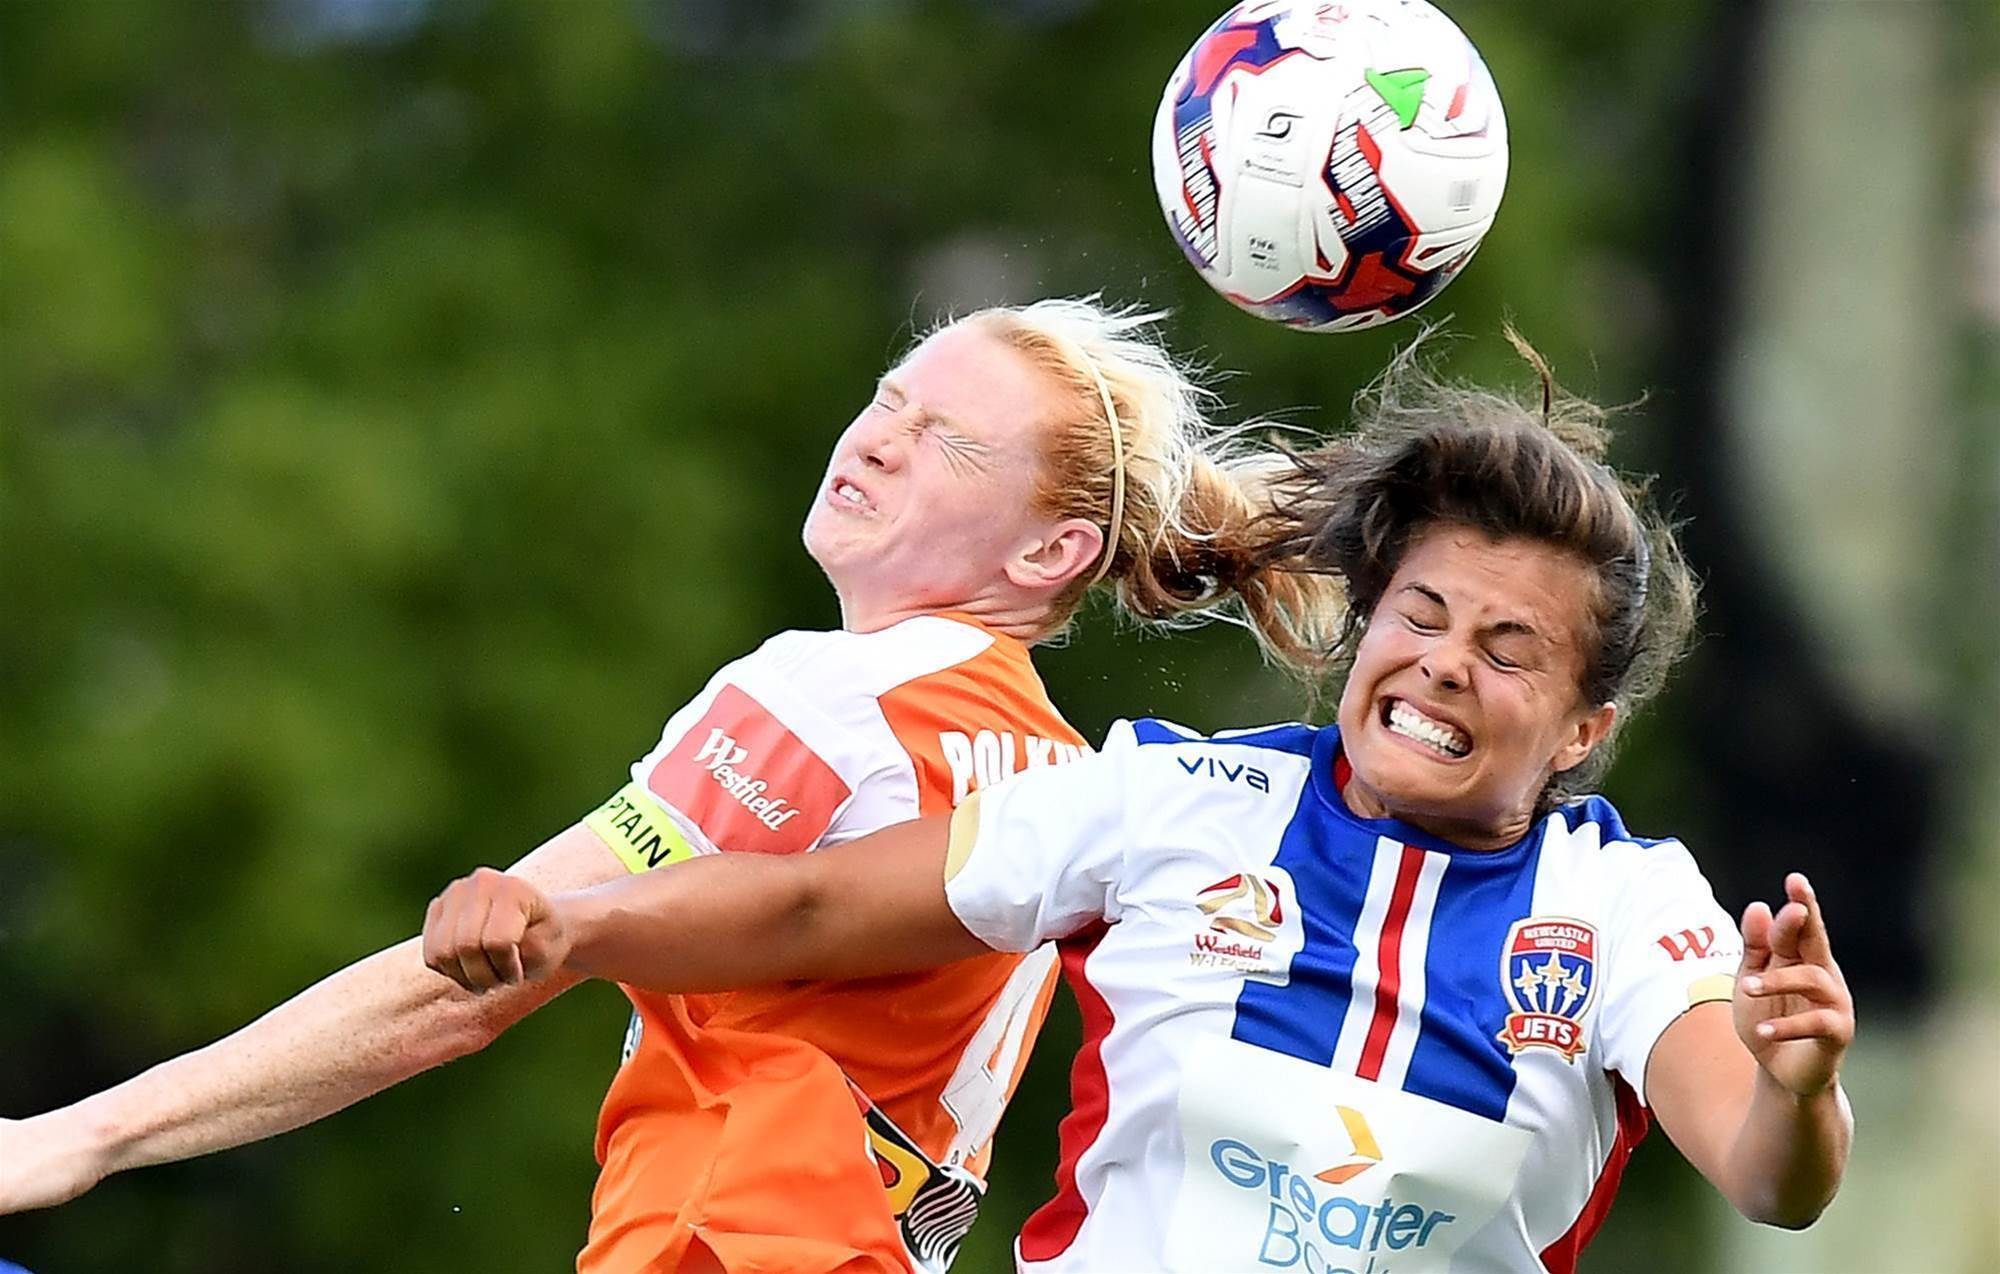 W-League Round 7 pic special